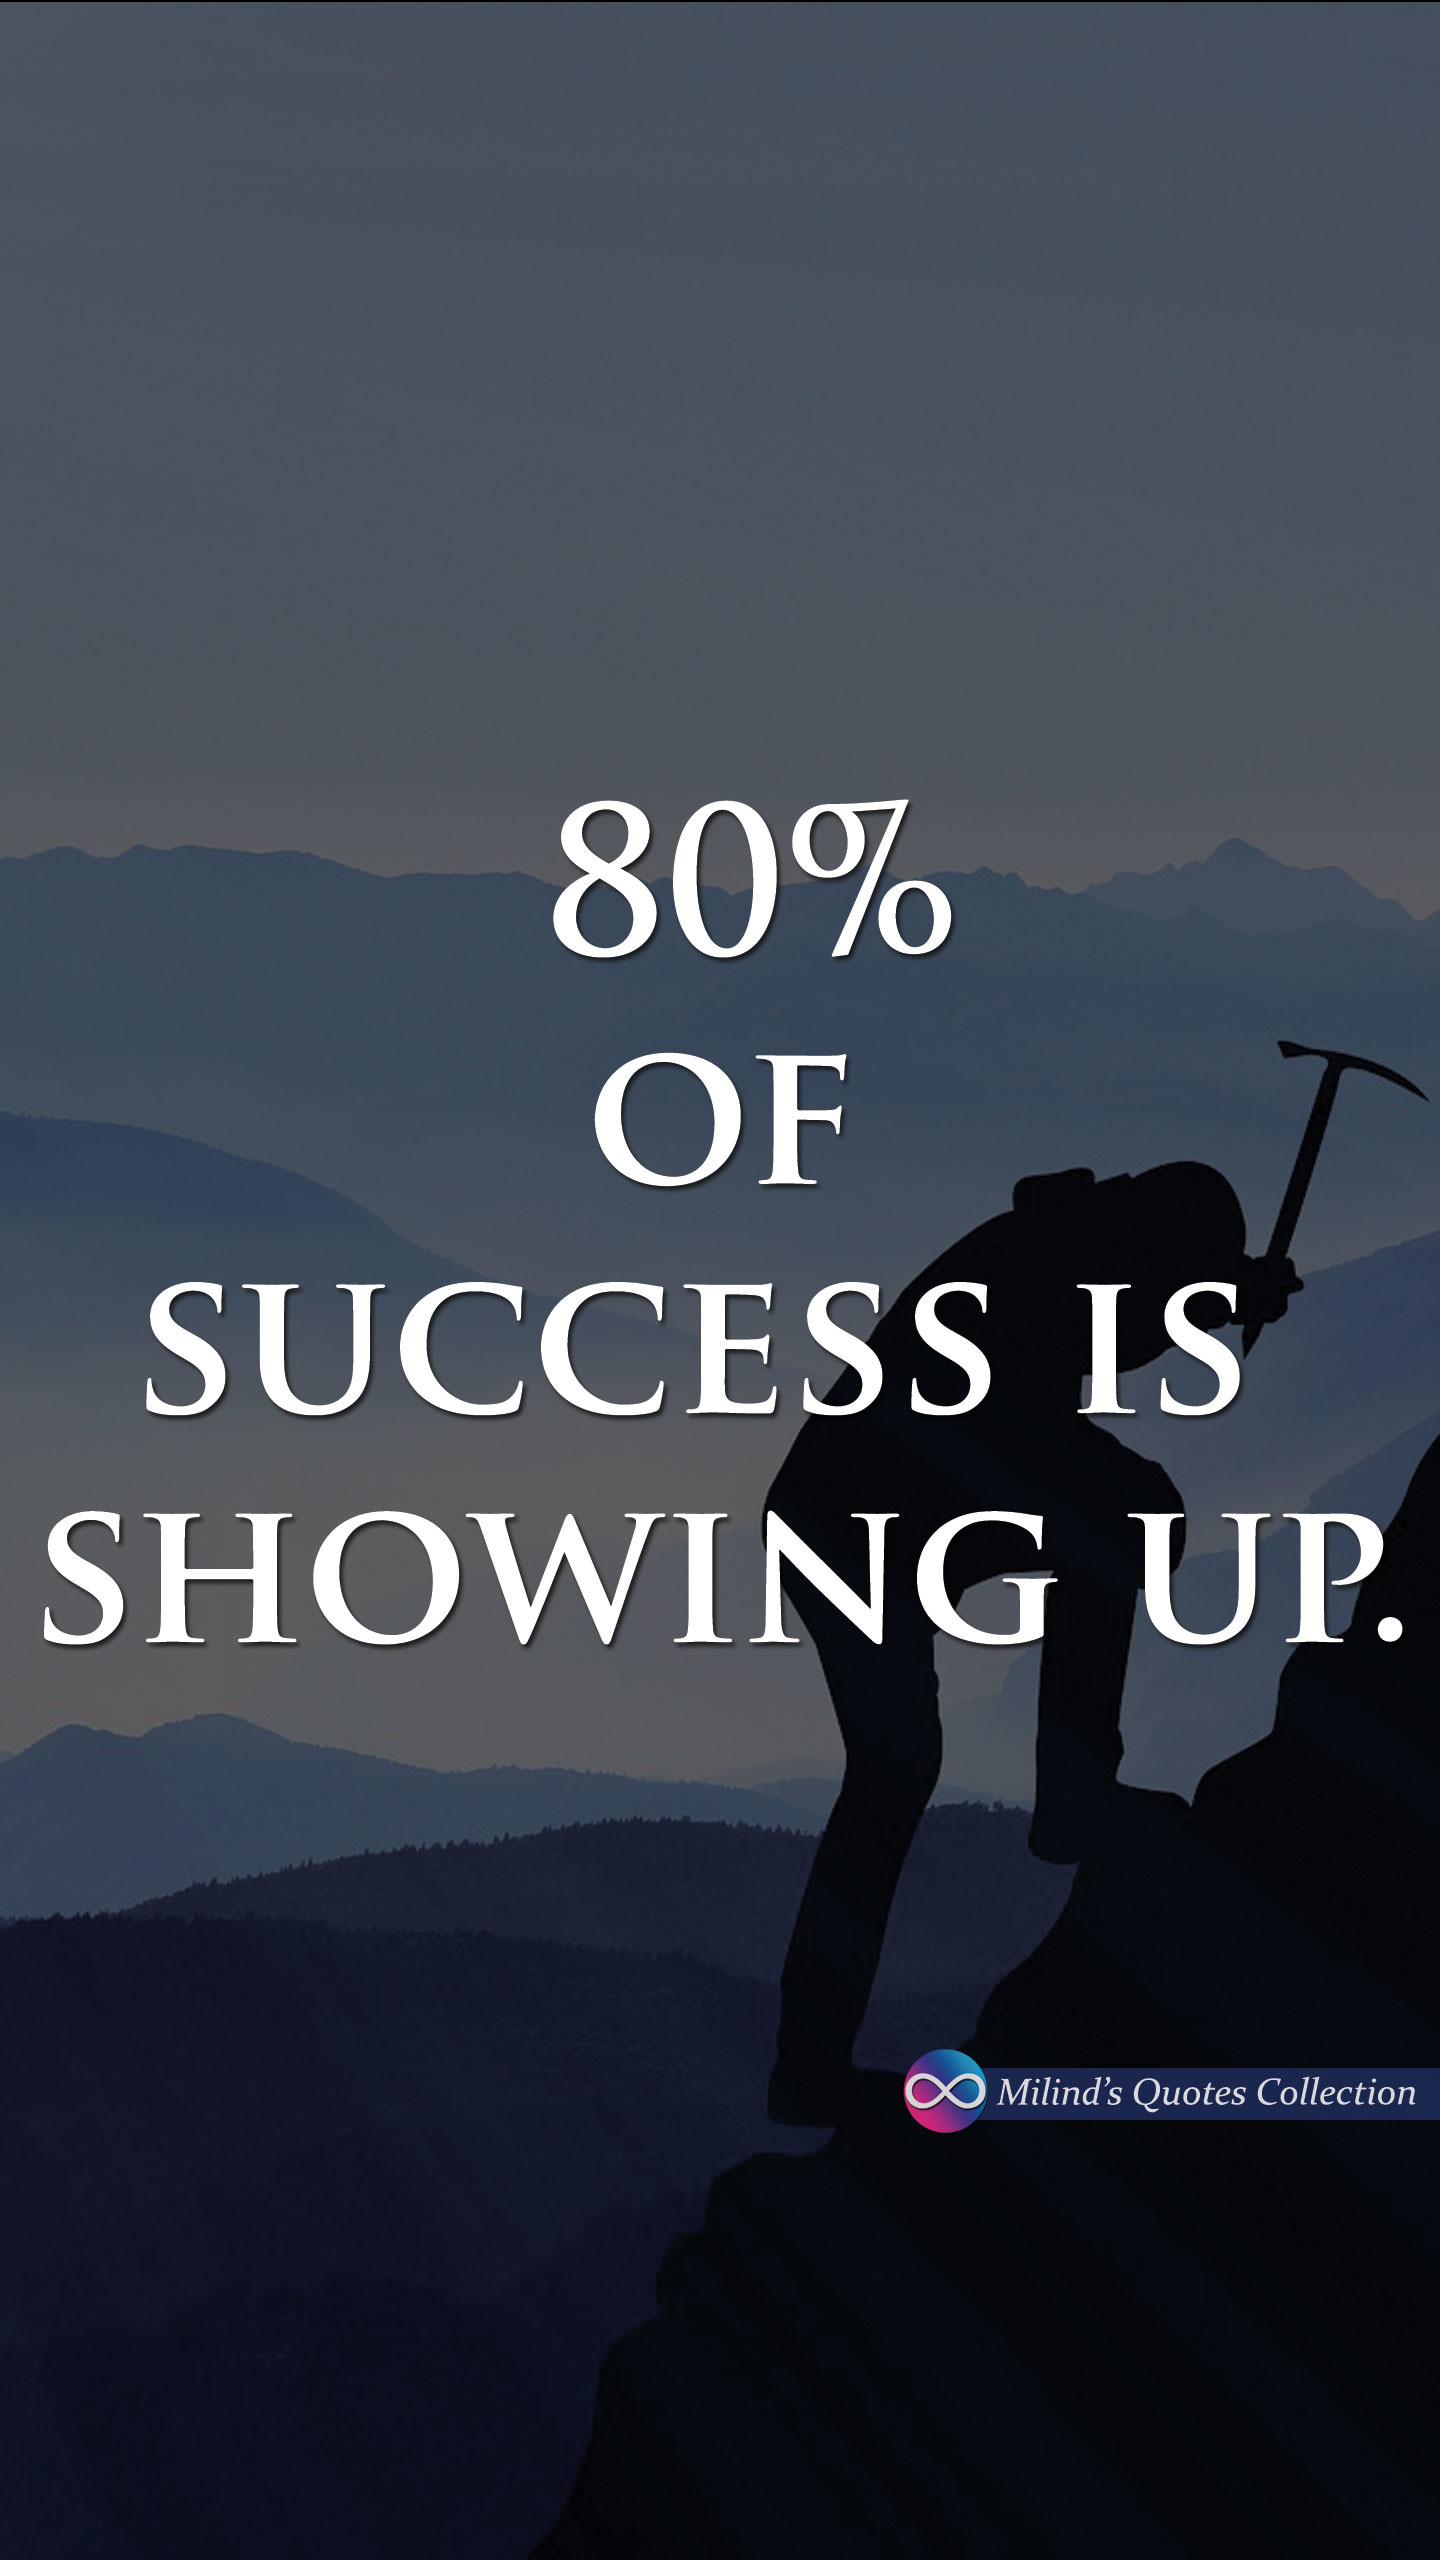 1440x2560 80% of #success is #showing #up #MilindsQuotesCollection #Quotes #Wallpaper